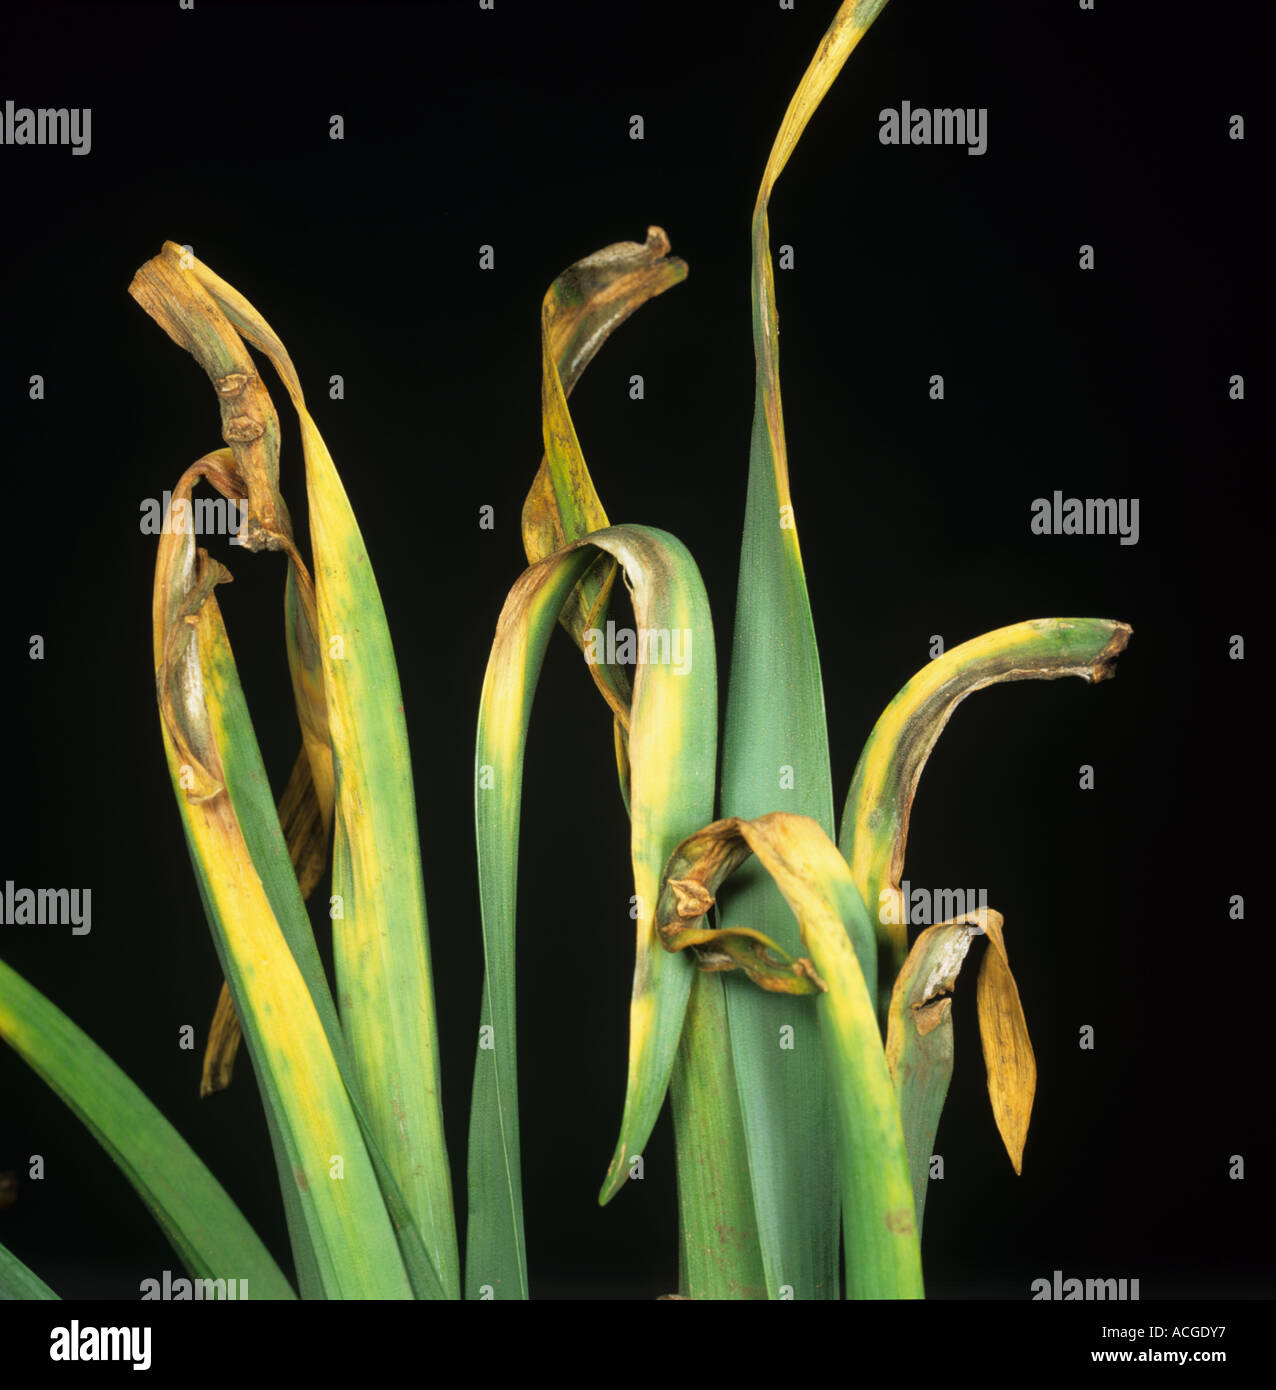 Narcissus smoulder Scelerotinia narcissicola on Narcicissus leaves - Stock Image